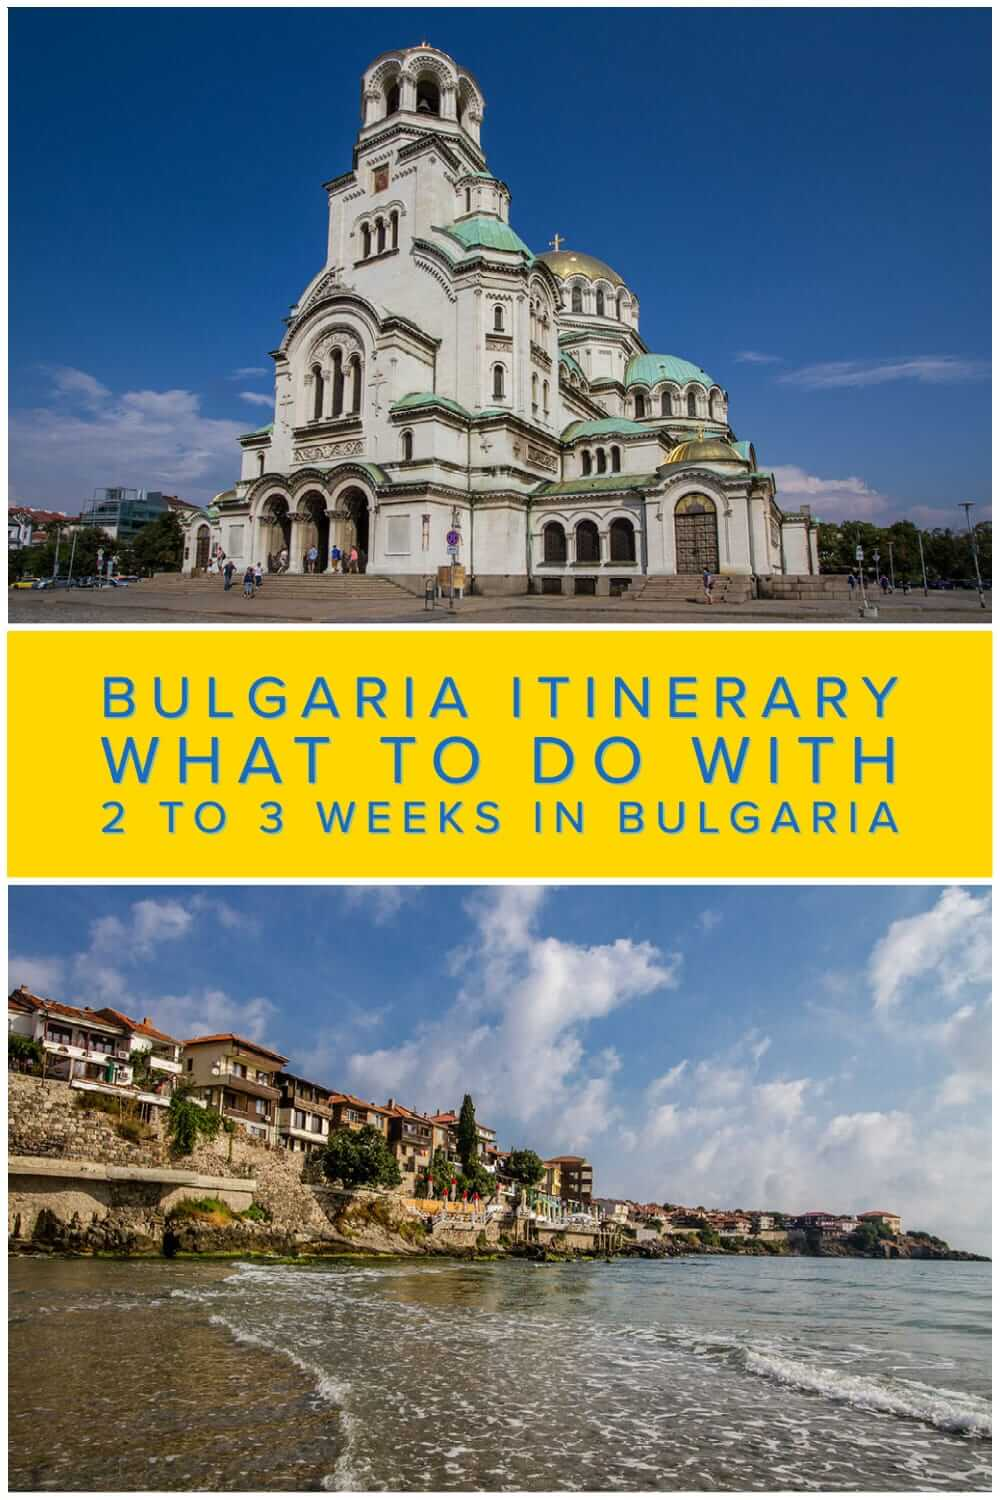 Comprehensive Bulgaria itinerary for backpackers and independent travellers to Bulgaria. What to see in Bulgaria in a 2 to 3 weeks #travel #backpacking #travelplanning #Balkans